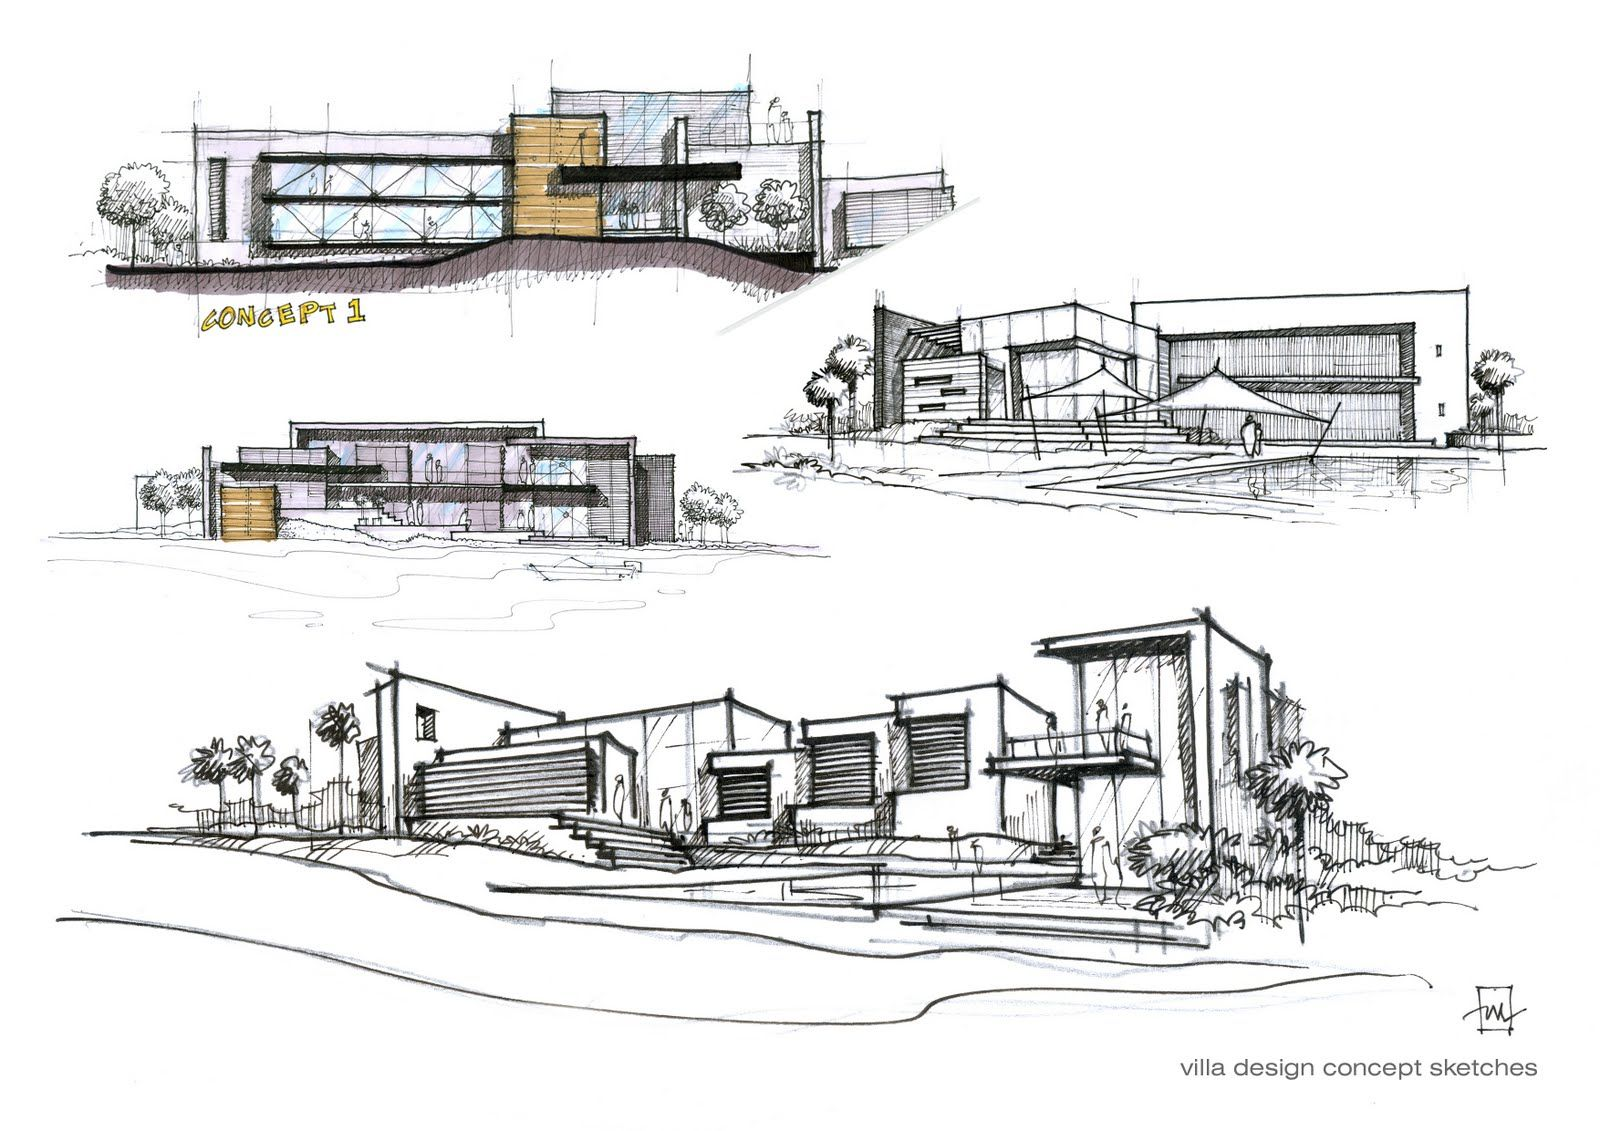 Villa design concept sketches atelier2 sketching for How to draw architectural plans by hand